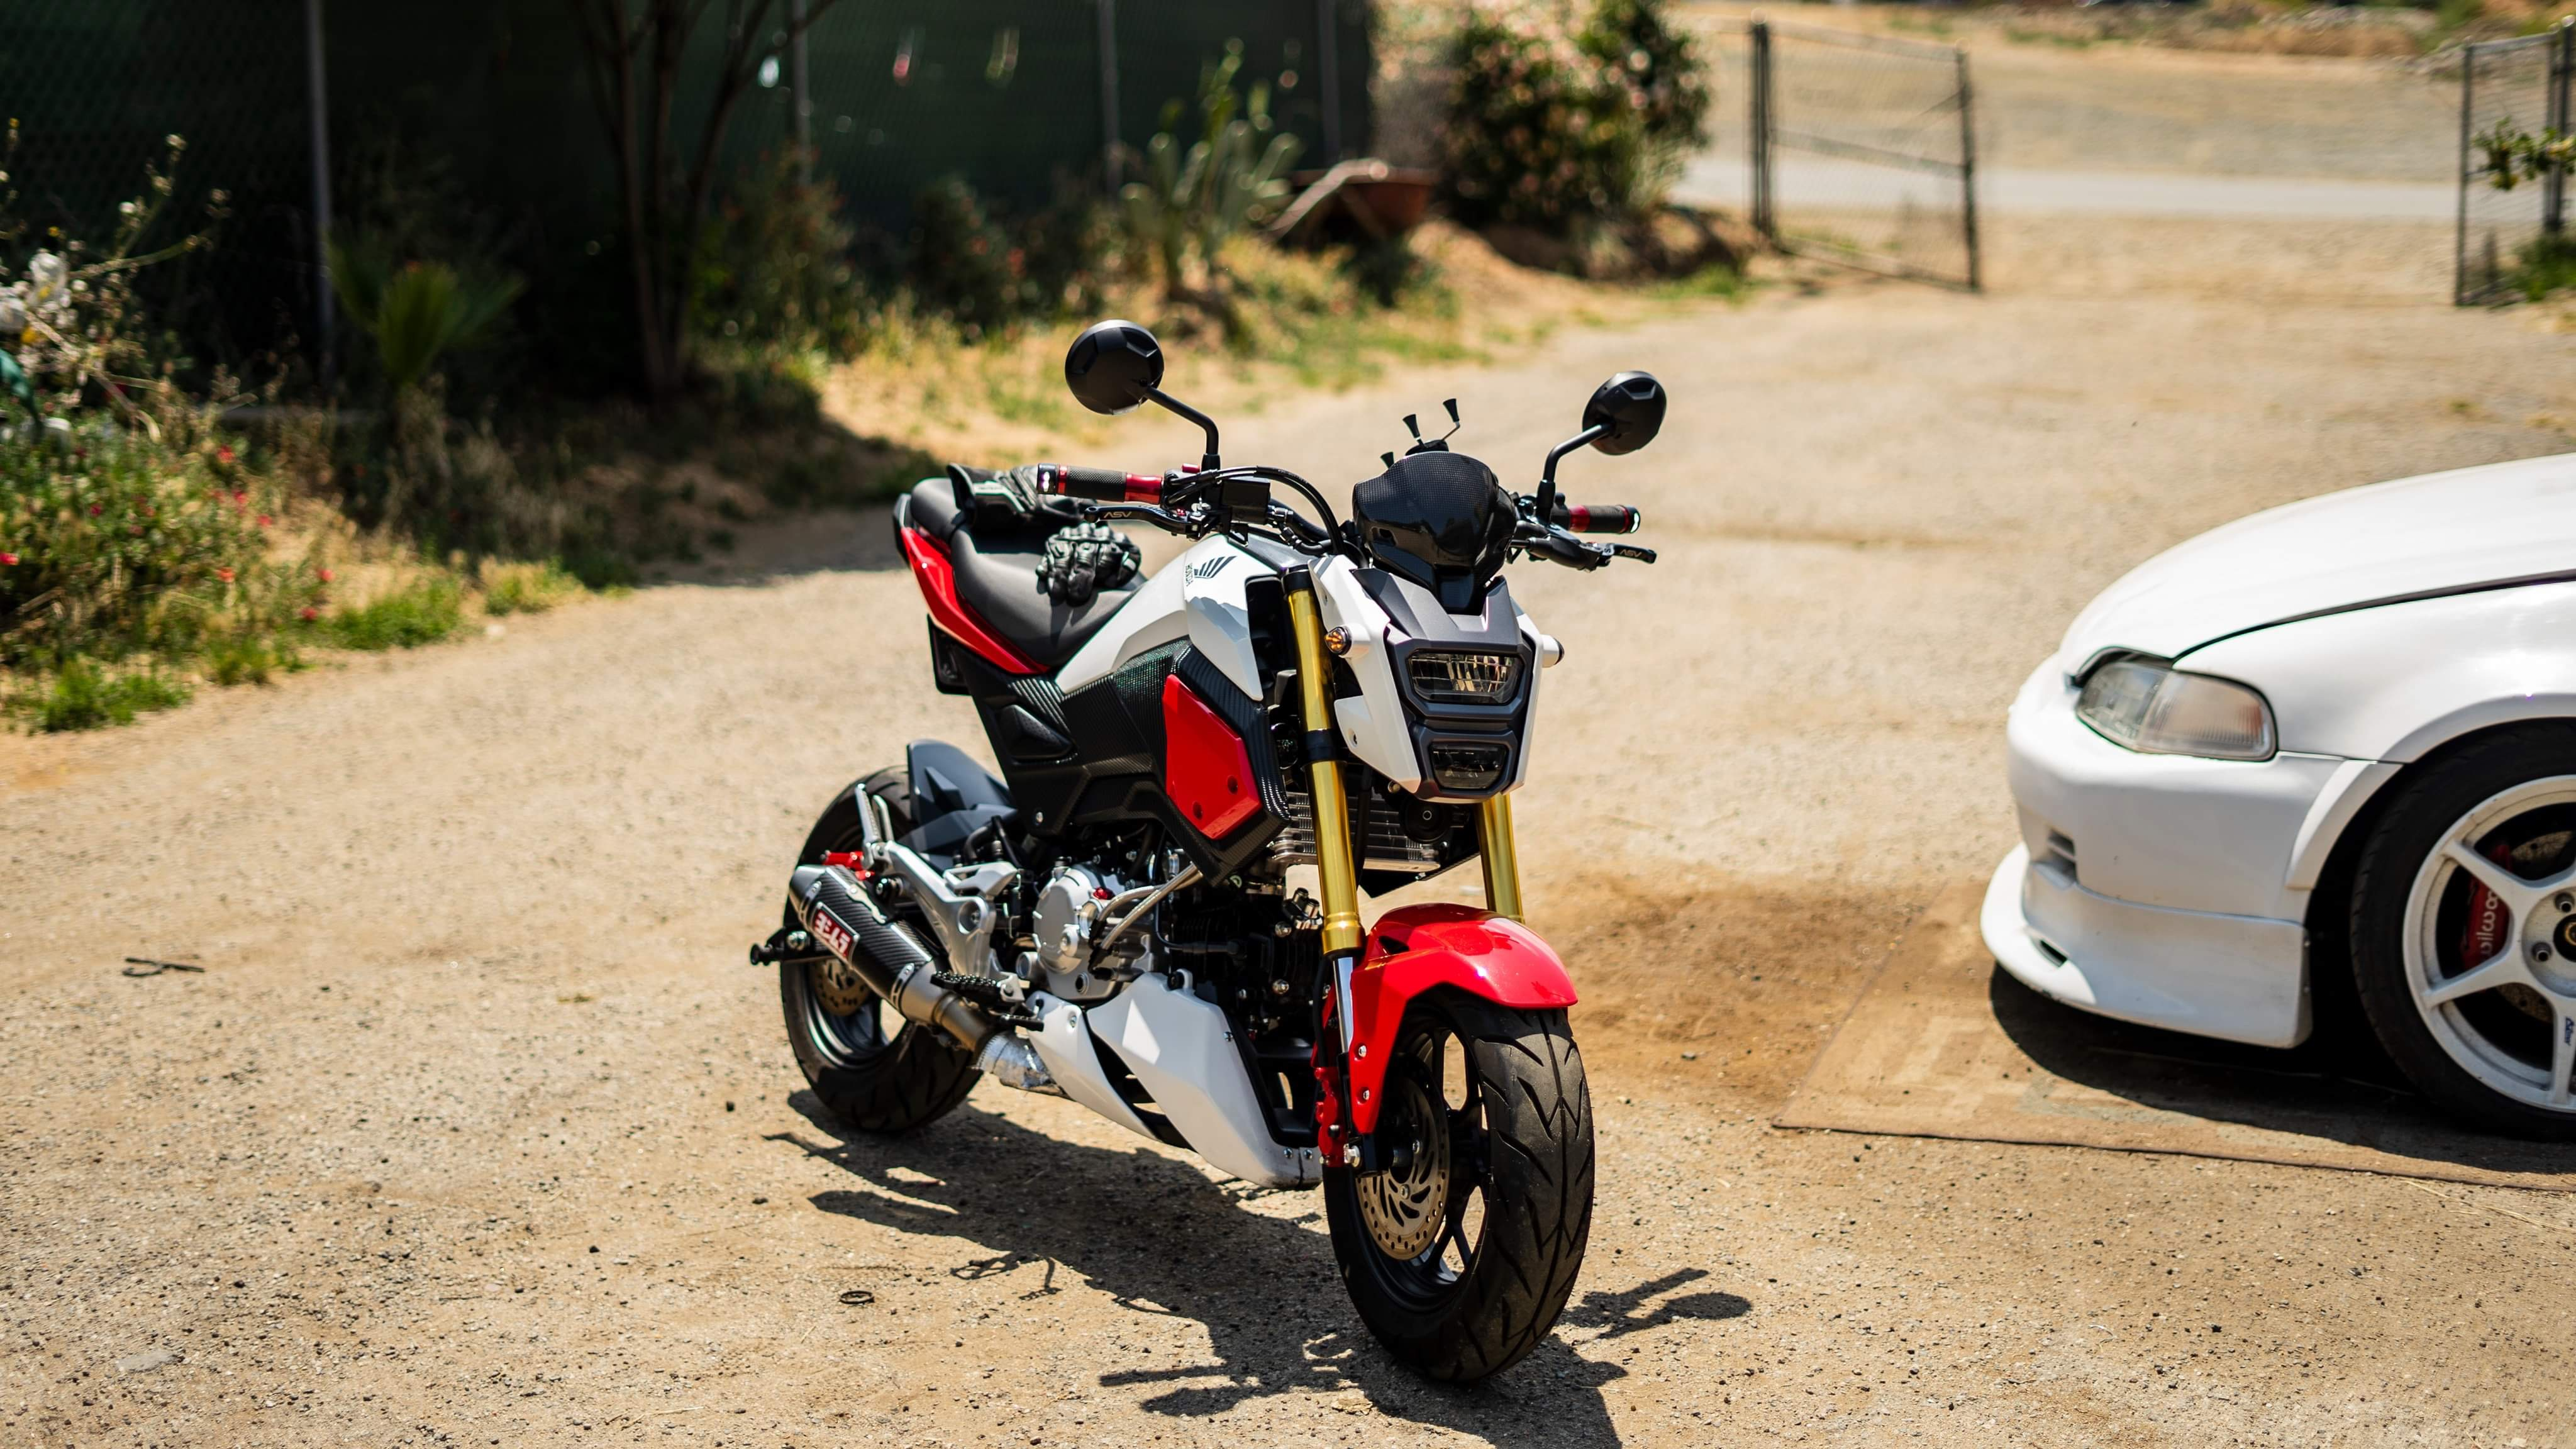 """The """"What did you do to your Grom today?"""" thread-2bd355ed-f884-4cb9-b843-2d4f7218711d.jpeg"""